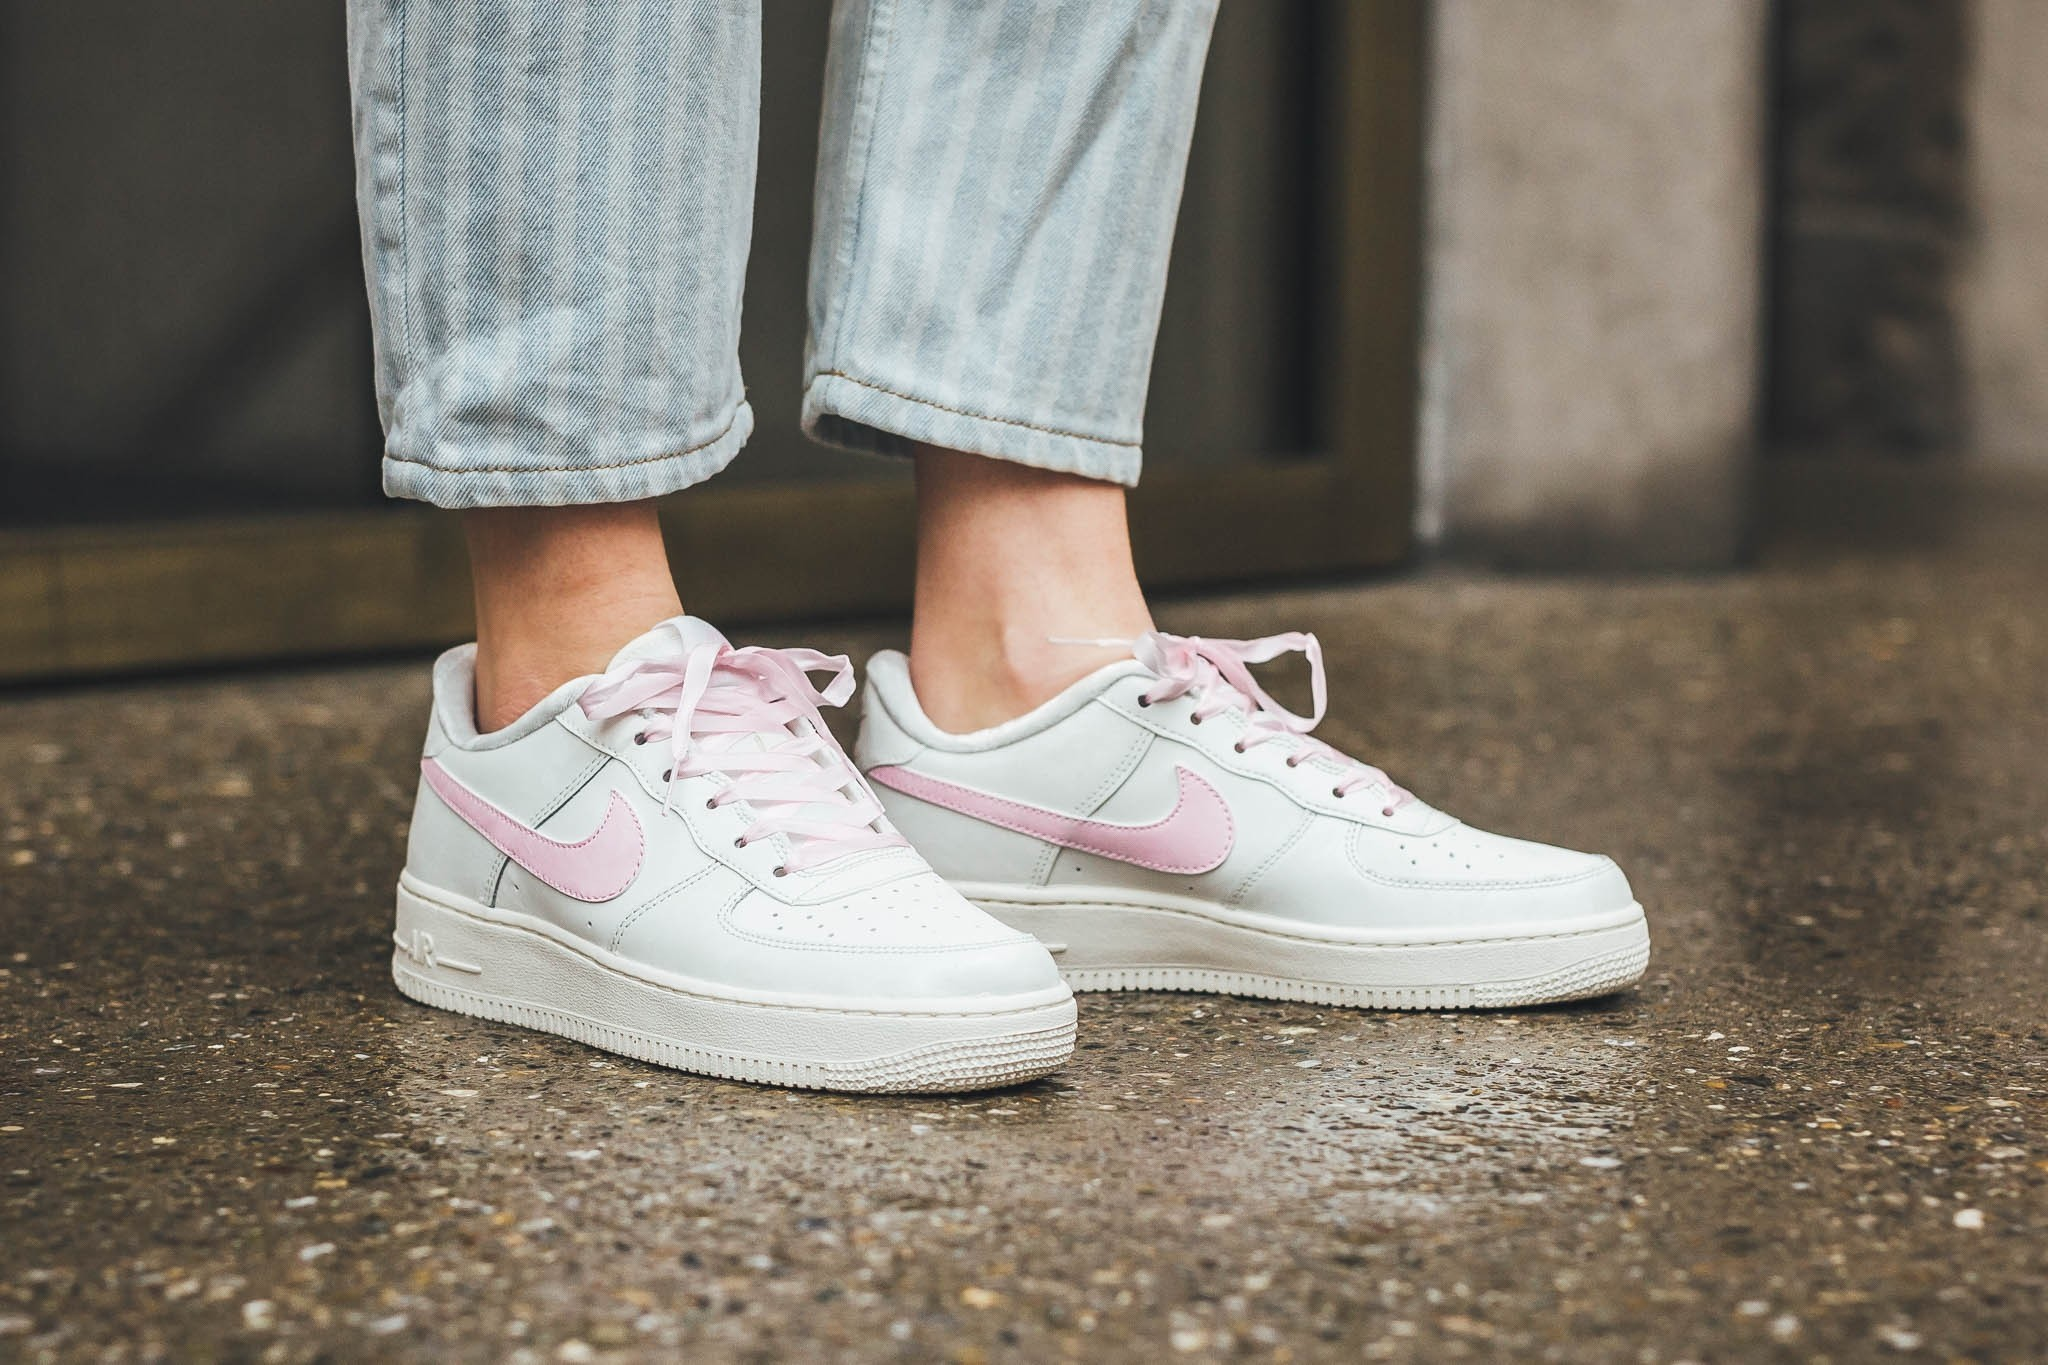 794509e77b Millennial Pink Transforms Nike's Air Force 1 With Adorable Results ...